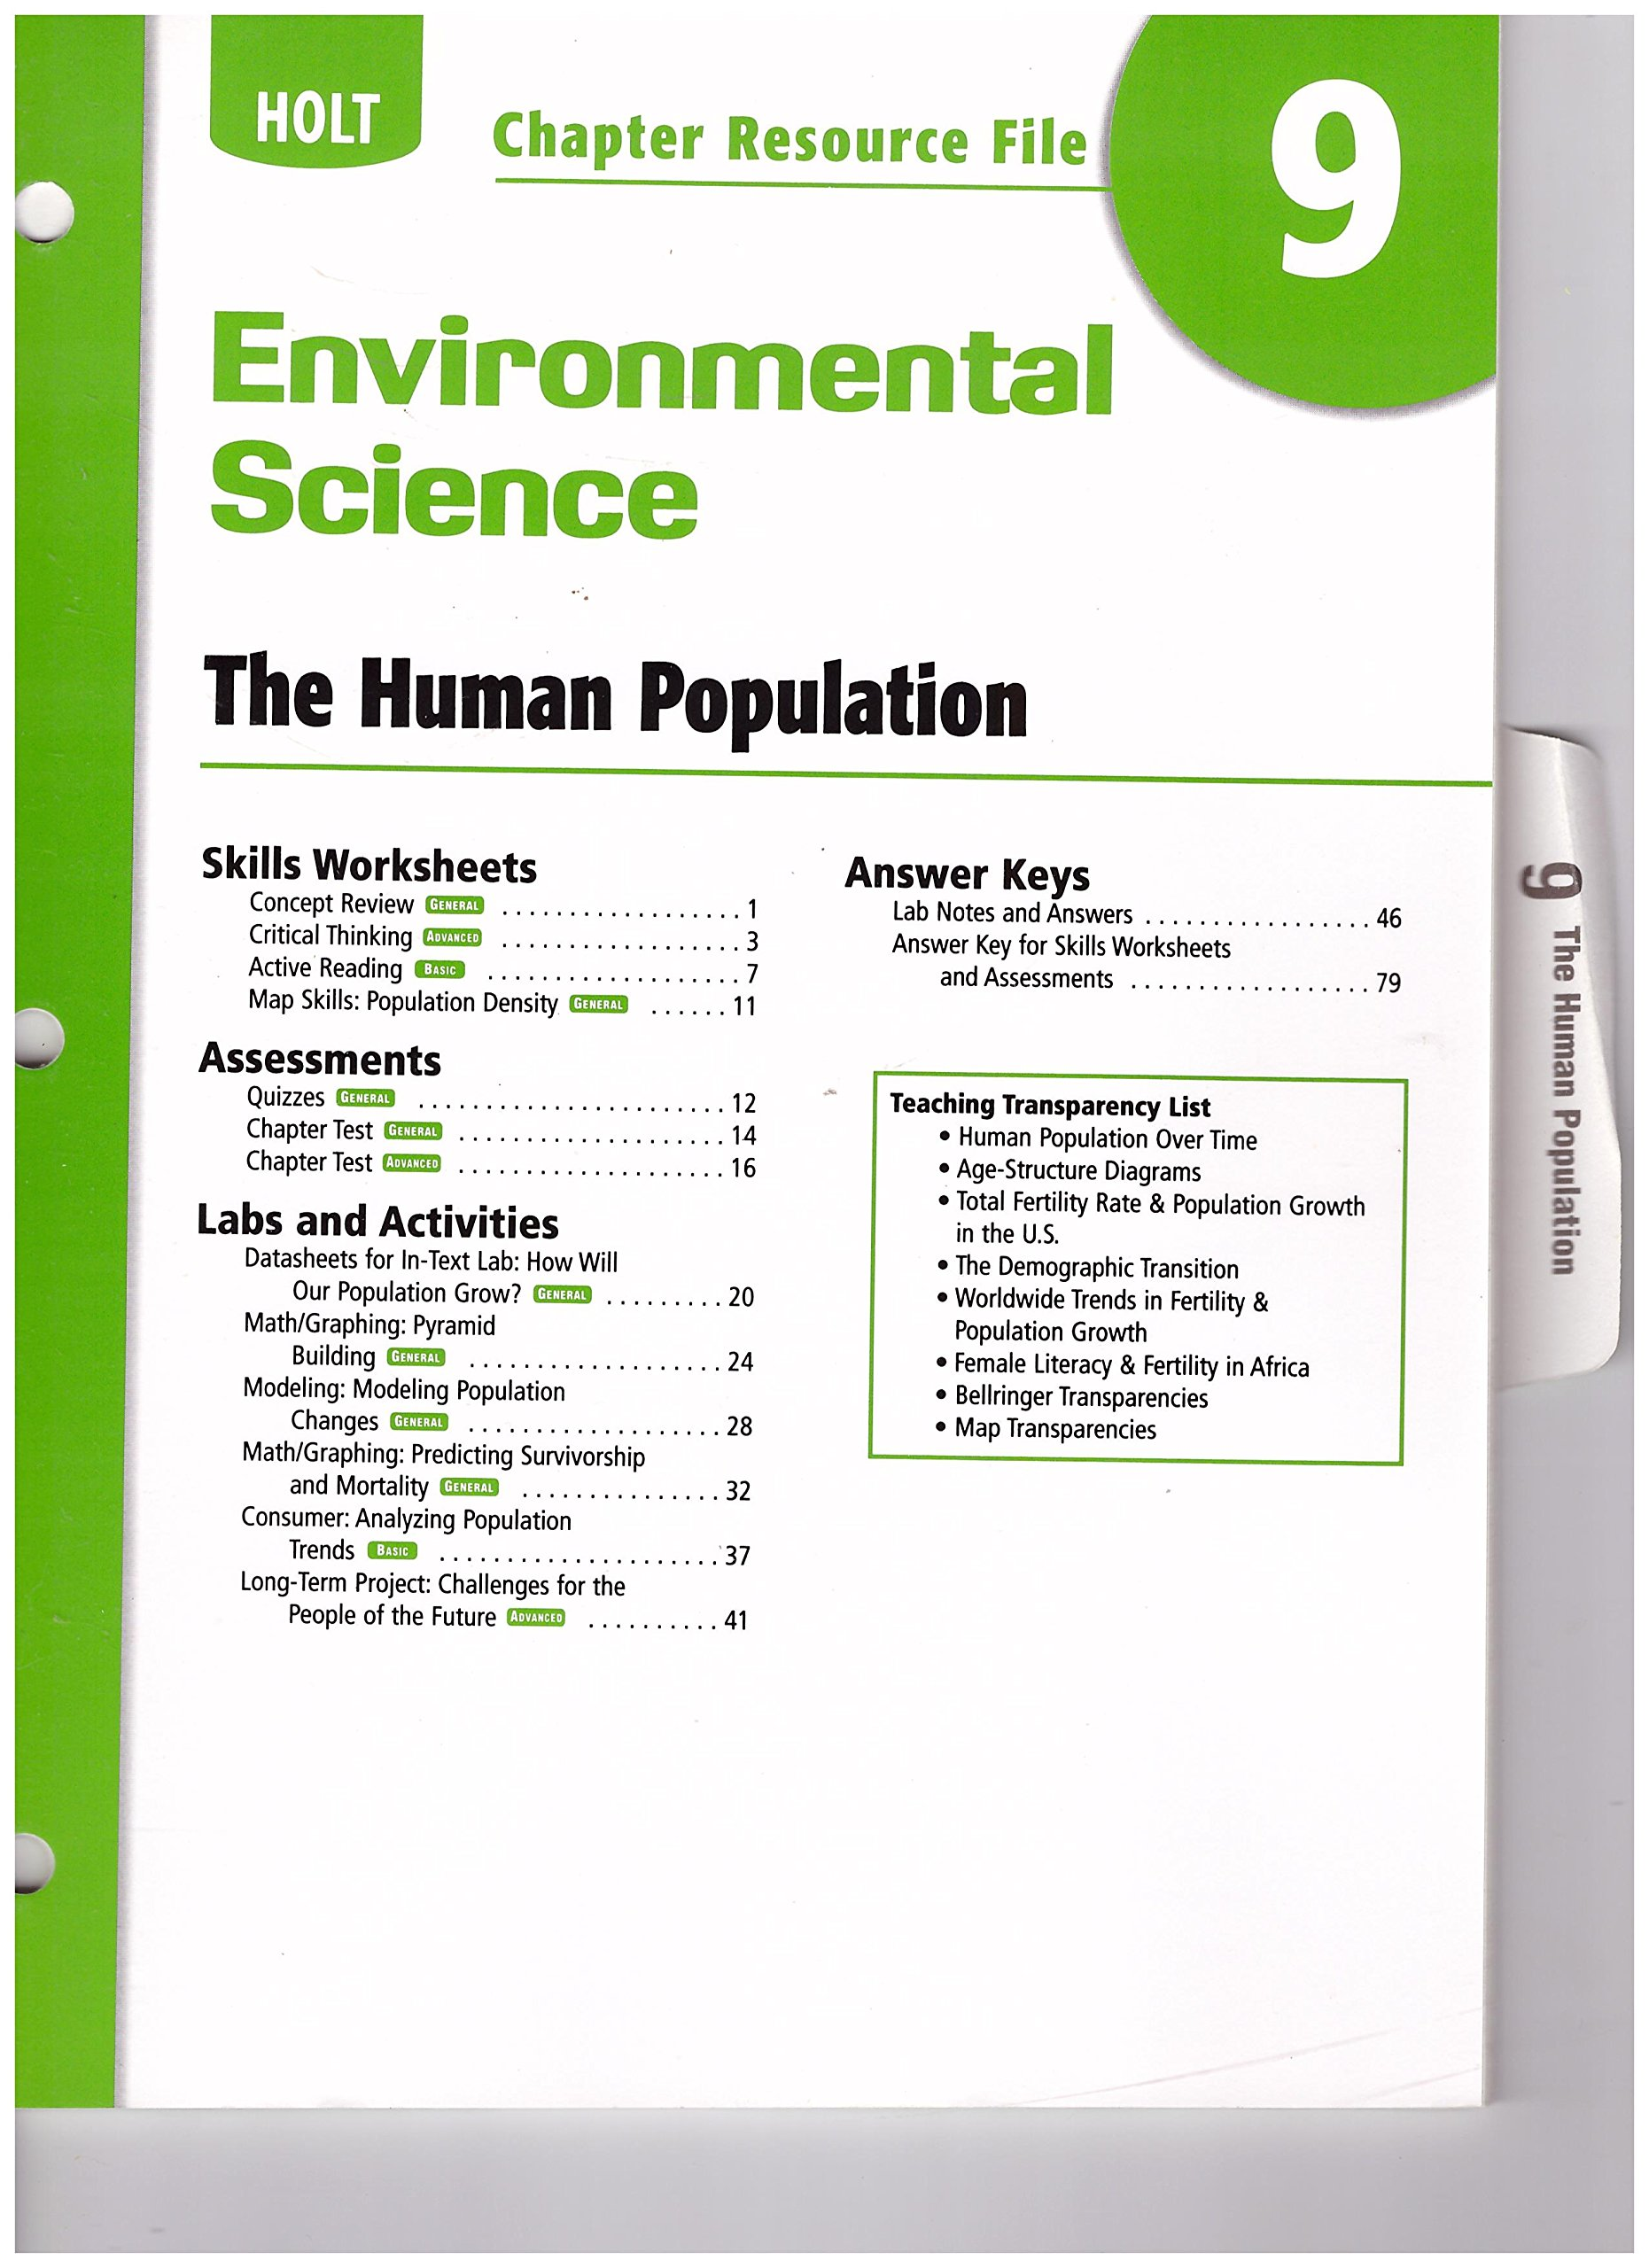 Buy Holt Environmental Science Resource File Chapter 9 The